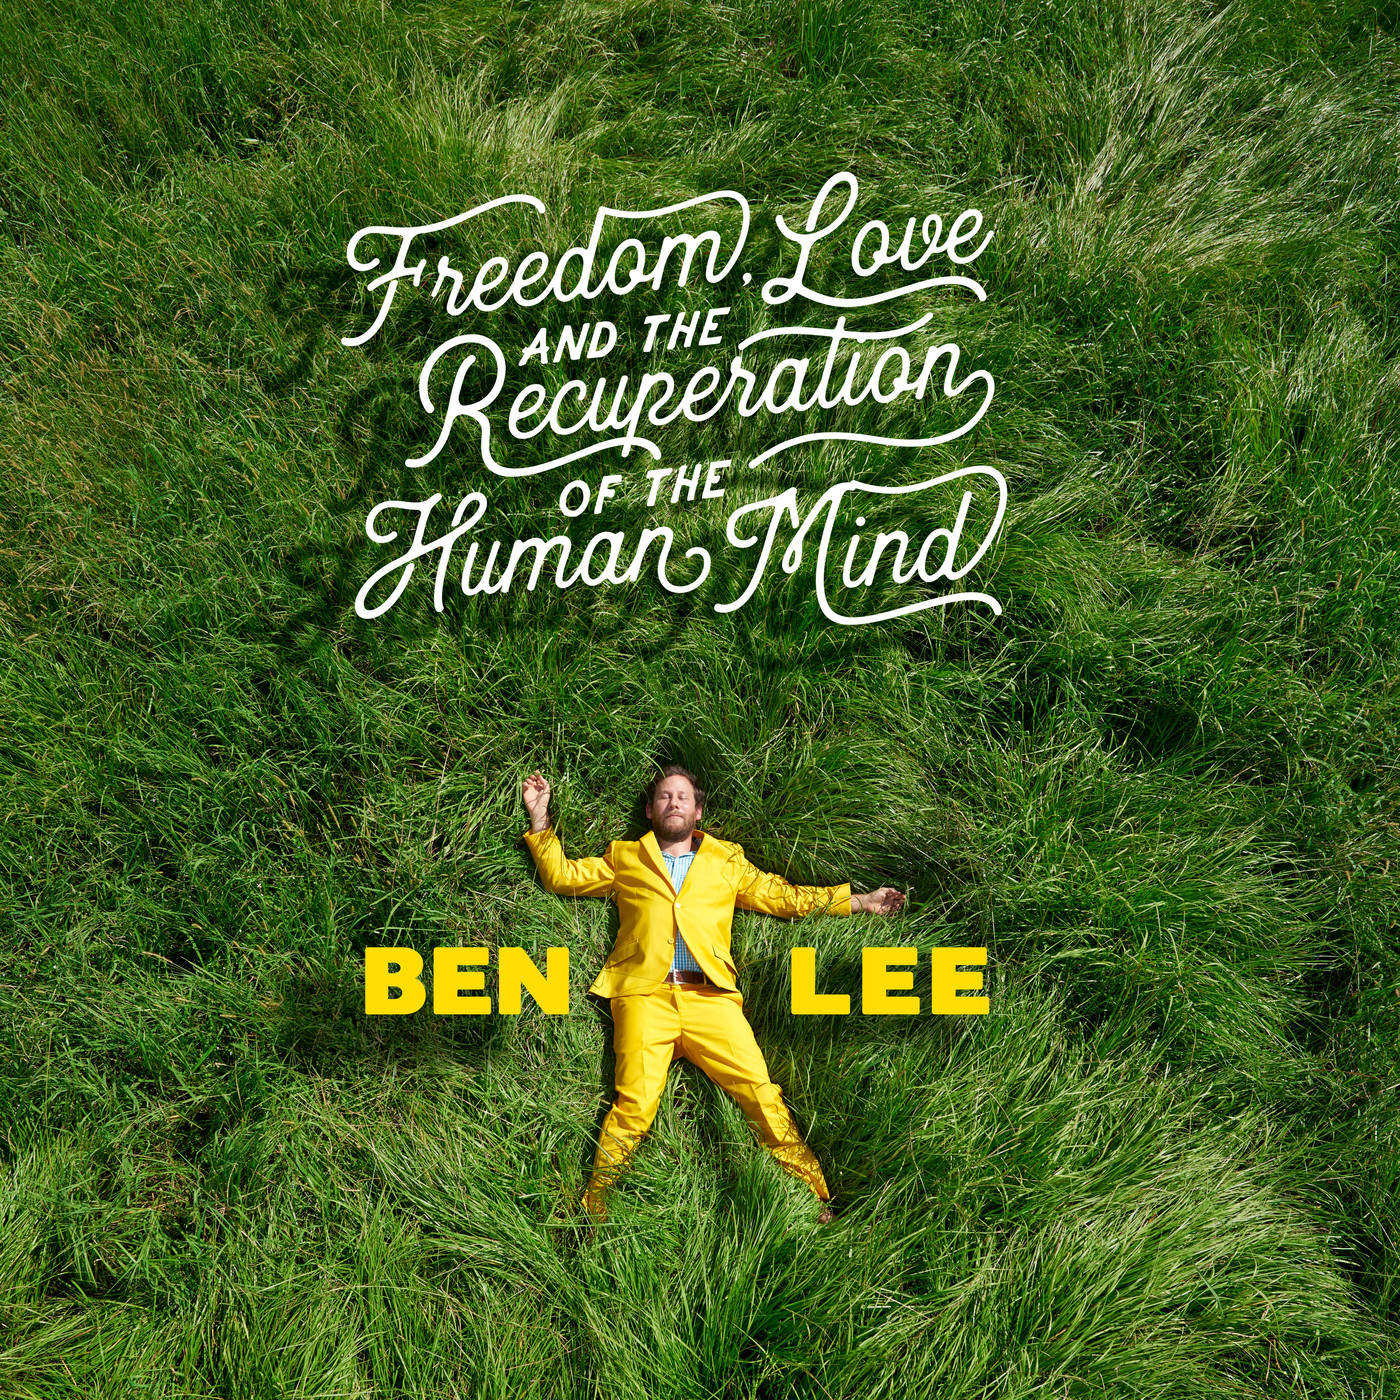 Ben Lee – Freedom, Love and the Recuperation of the Human Mind (2016)